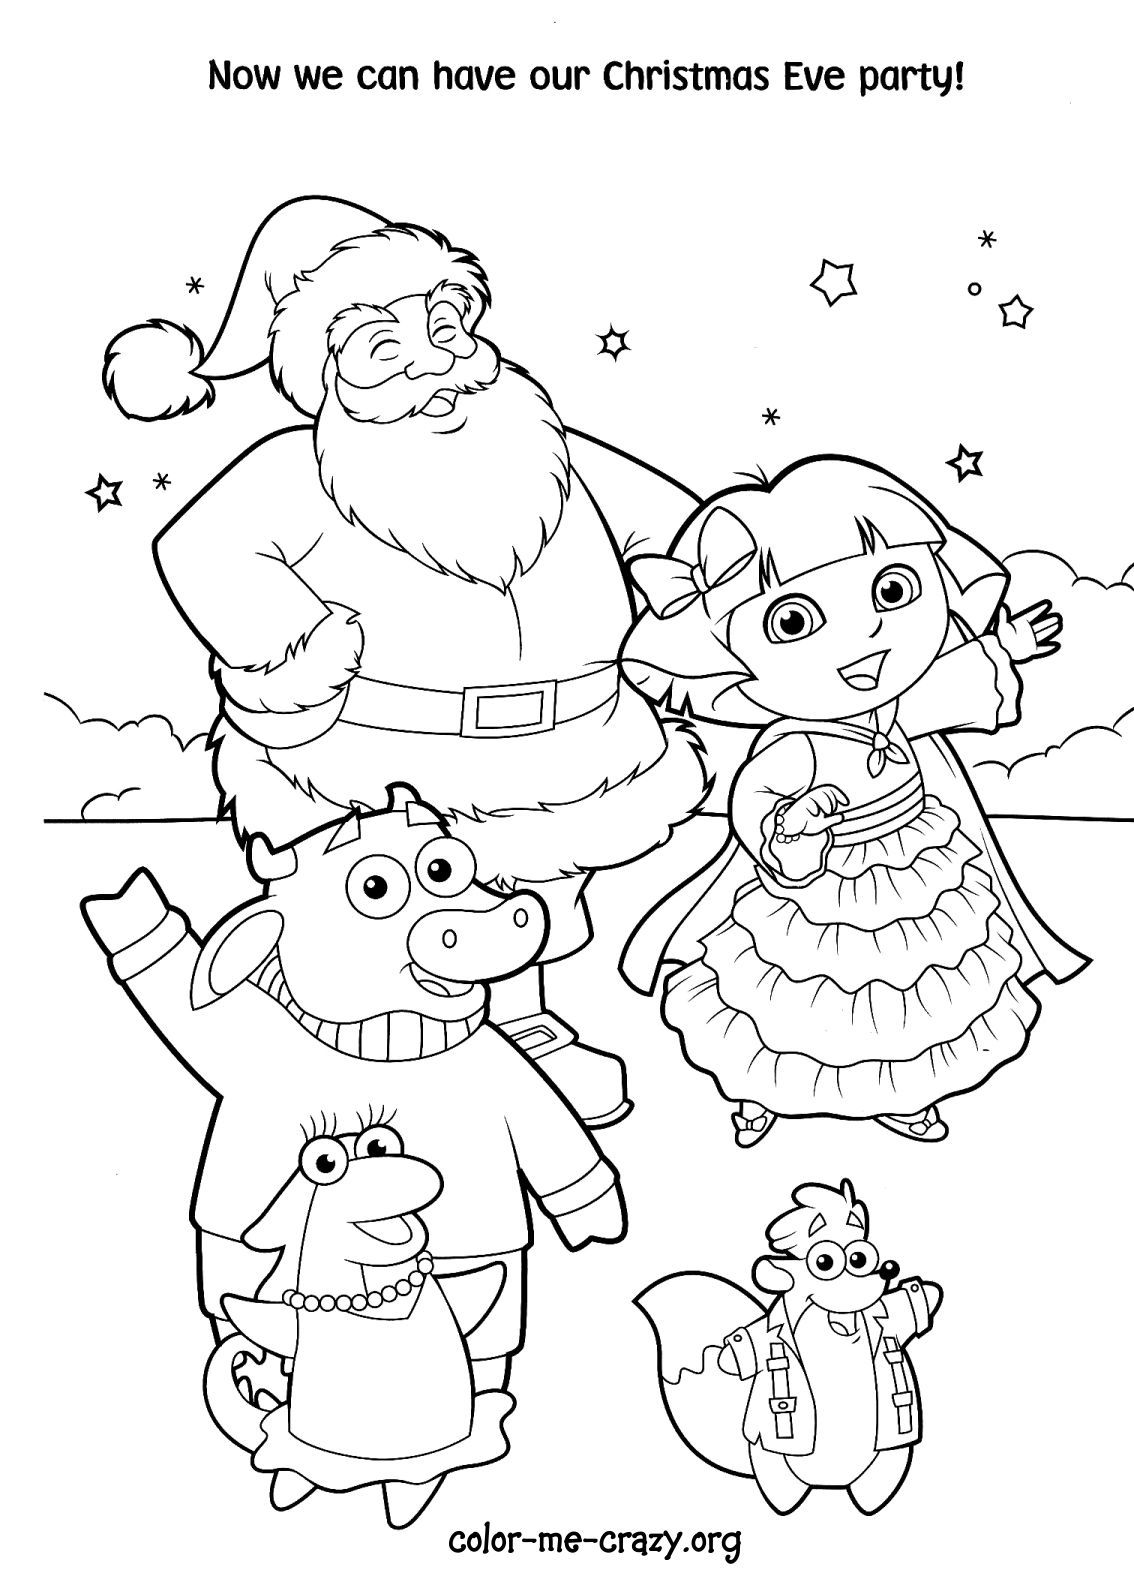 Dora Parties With Santa And Friends Coloring Page Coloring Pages Kids Coloring Books Christmas Coloring Pages